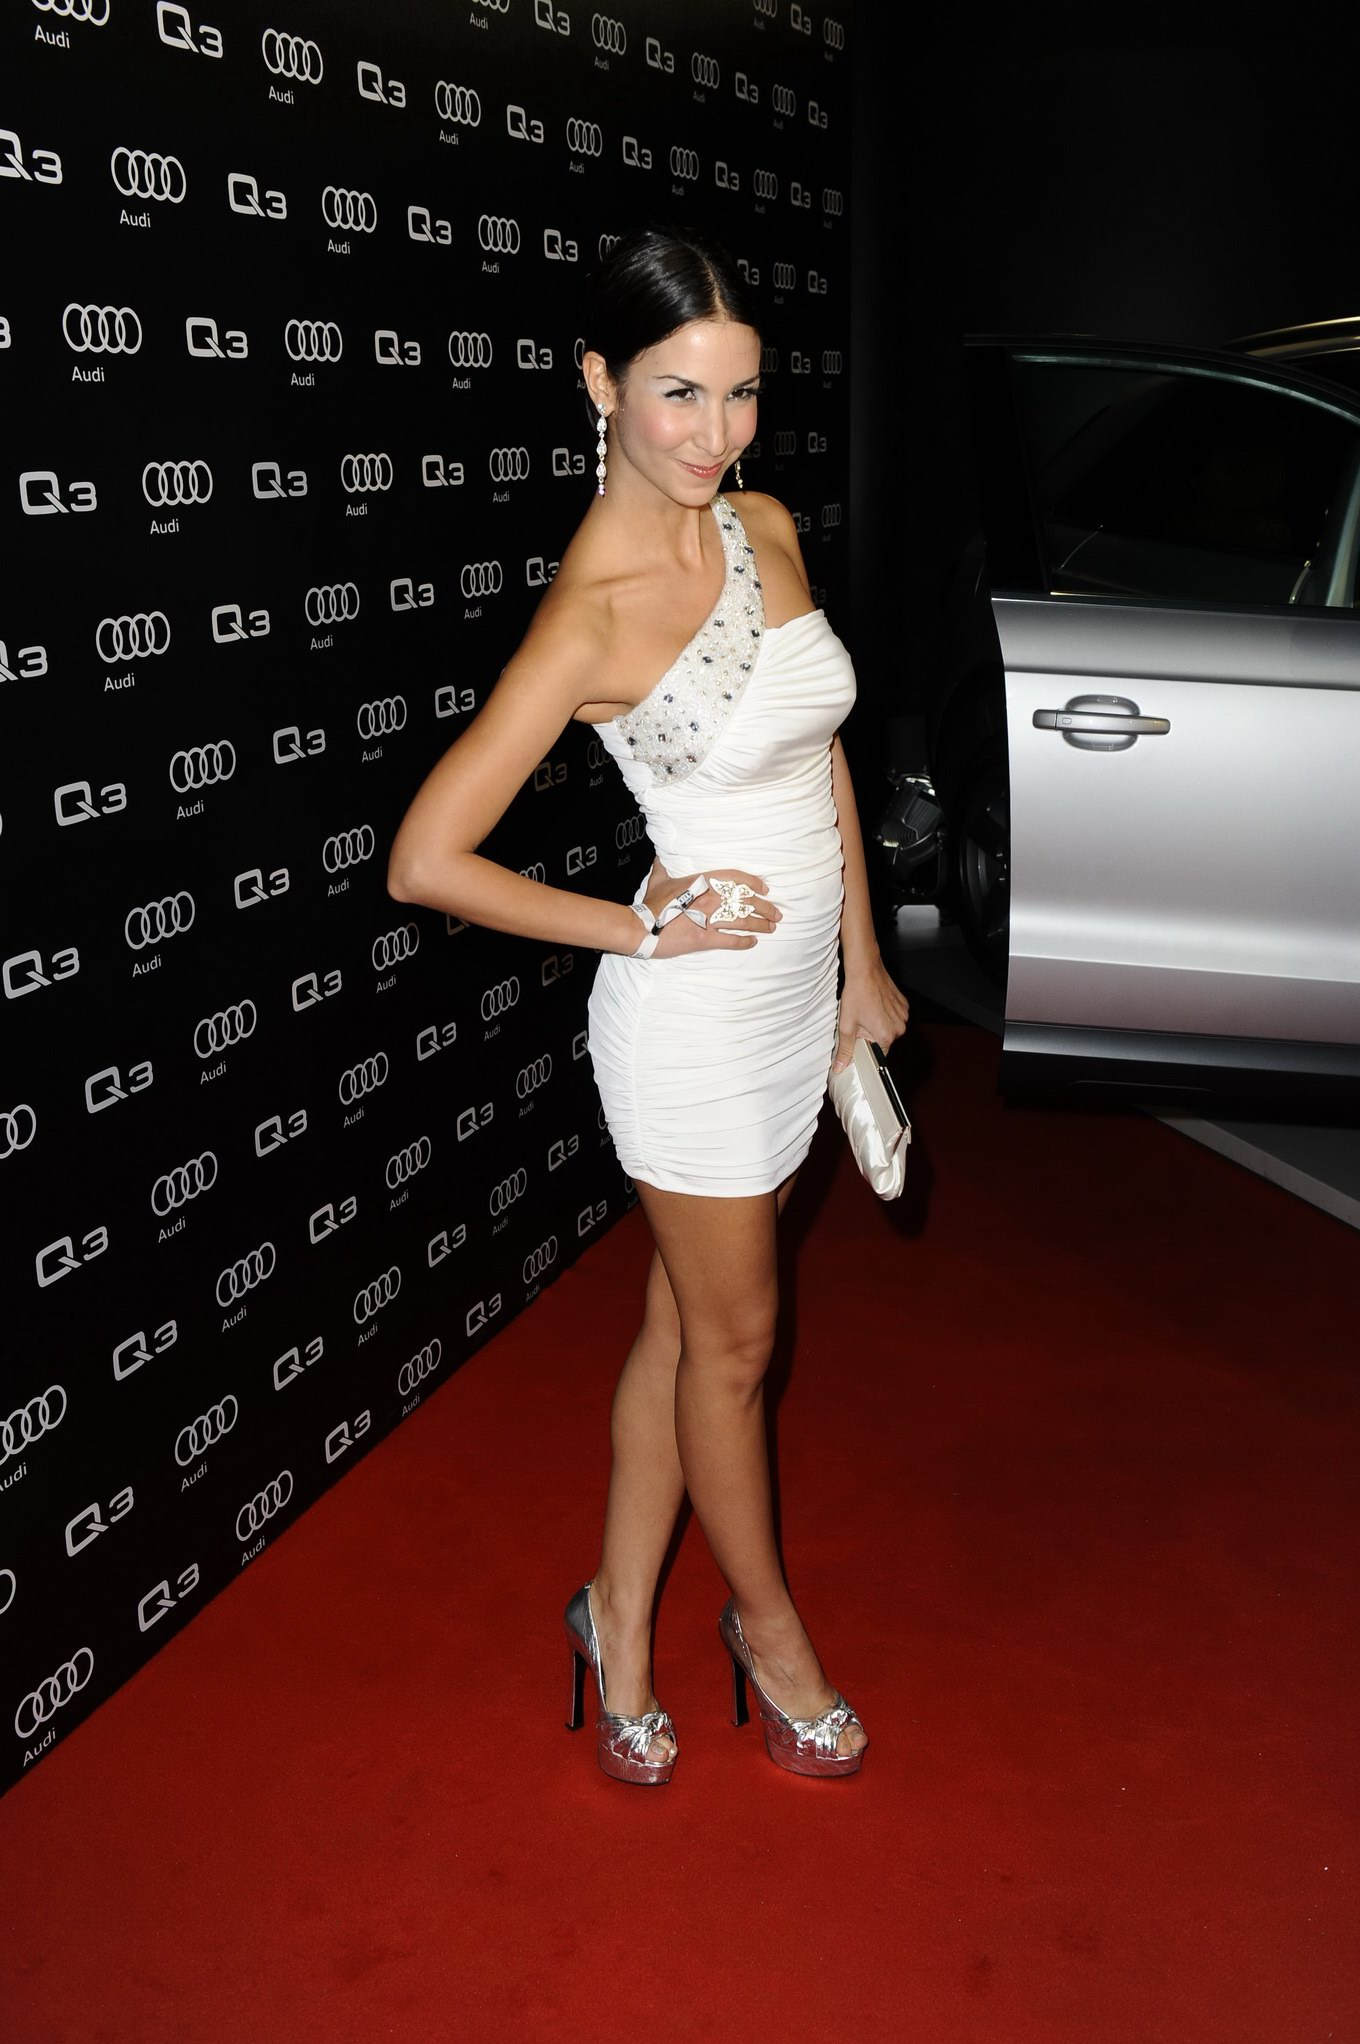 Sila Sahin upskirt at the Audi Q3 presentation in Berlin